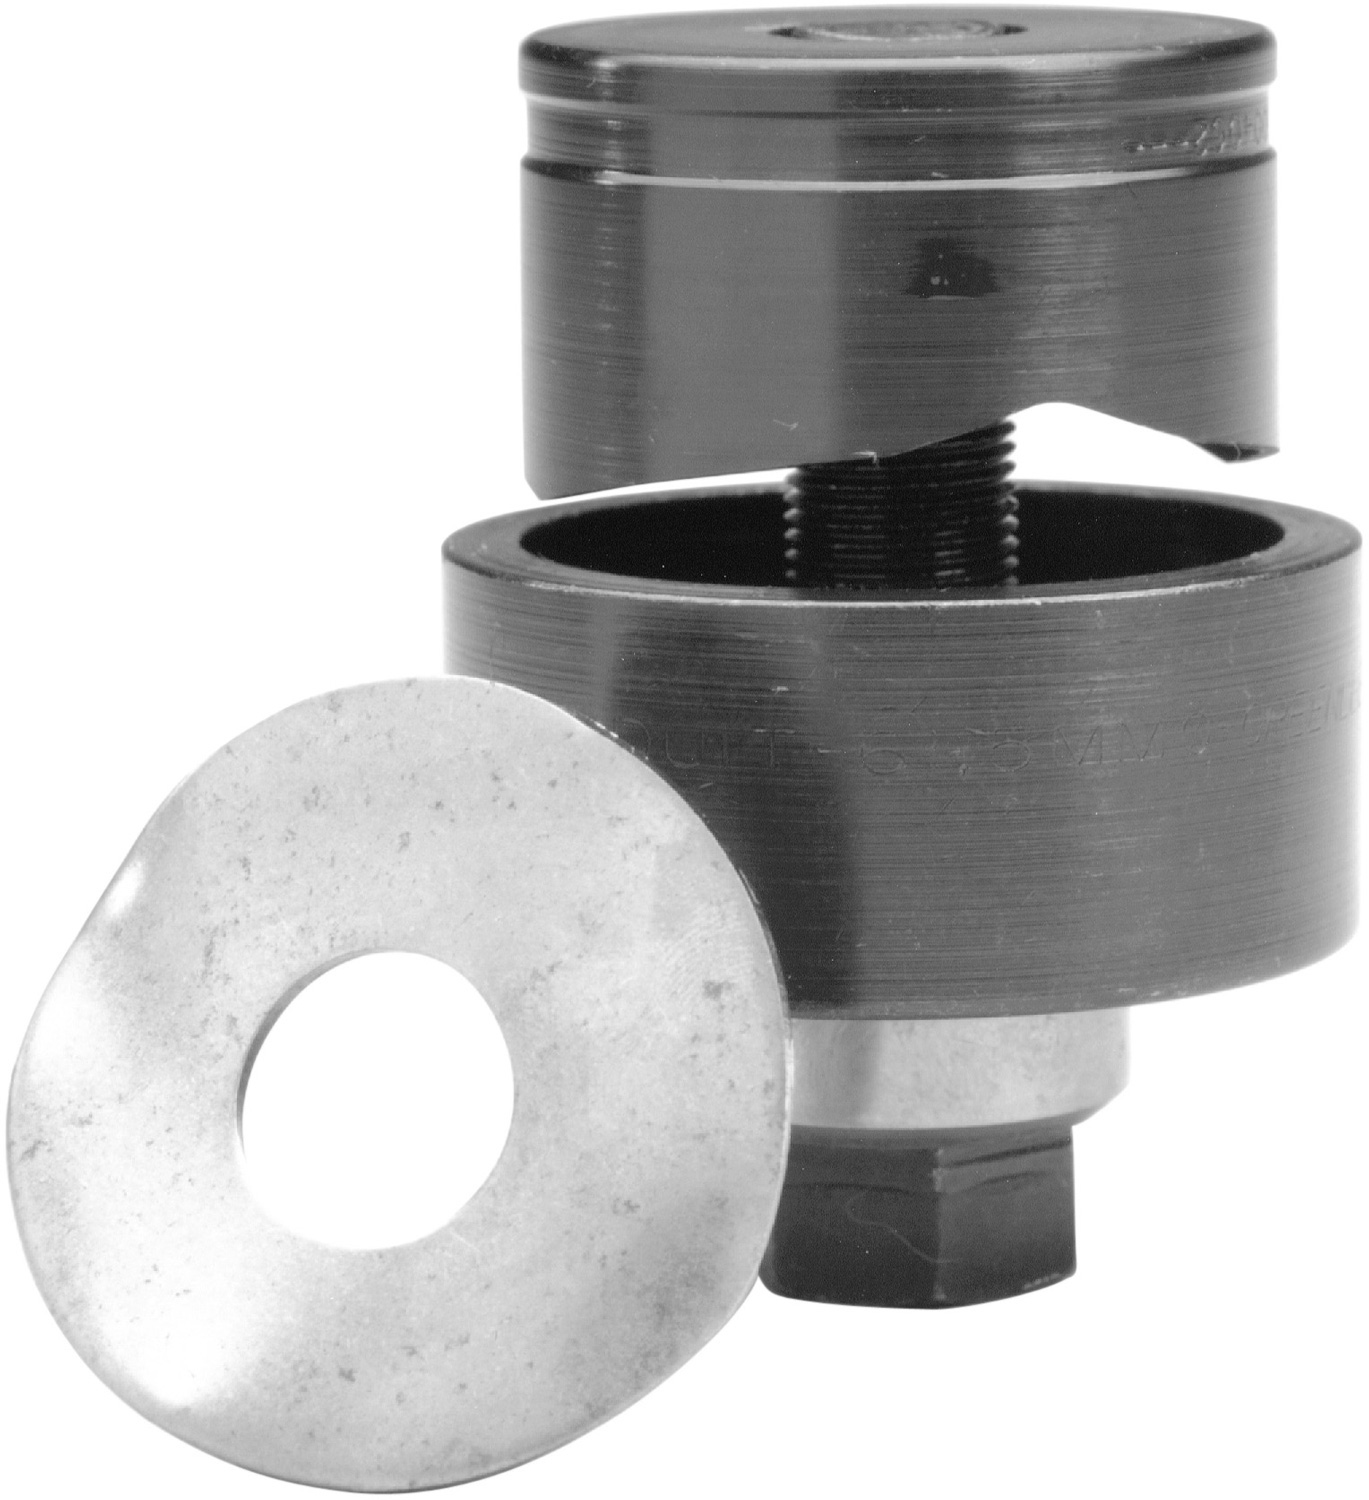 Greenlee Chassis Punch For 3 4 Inch Holes